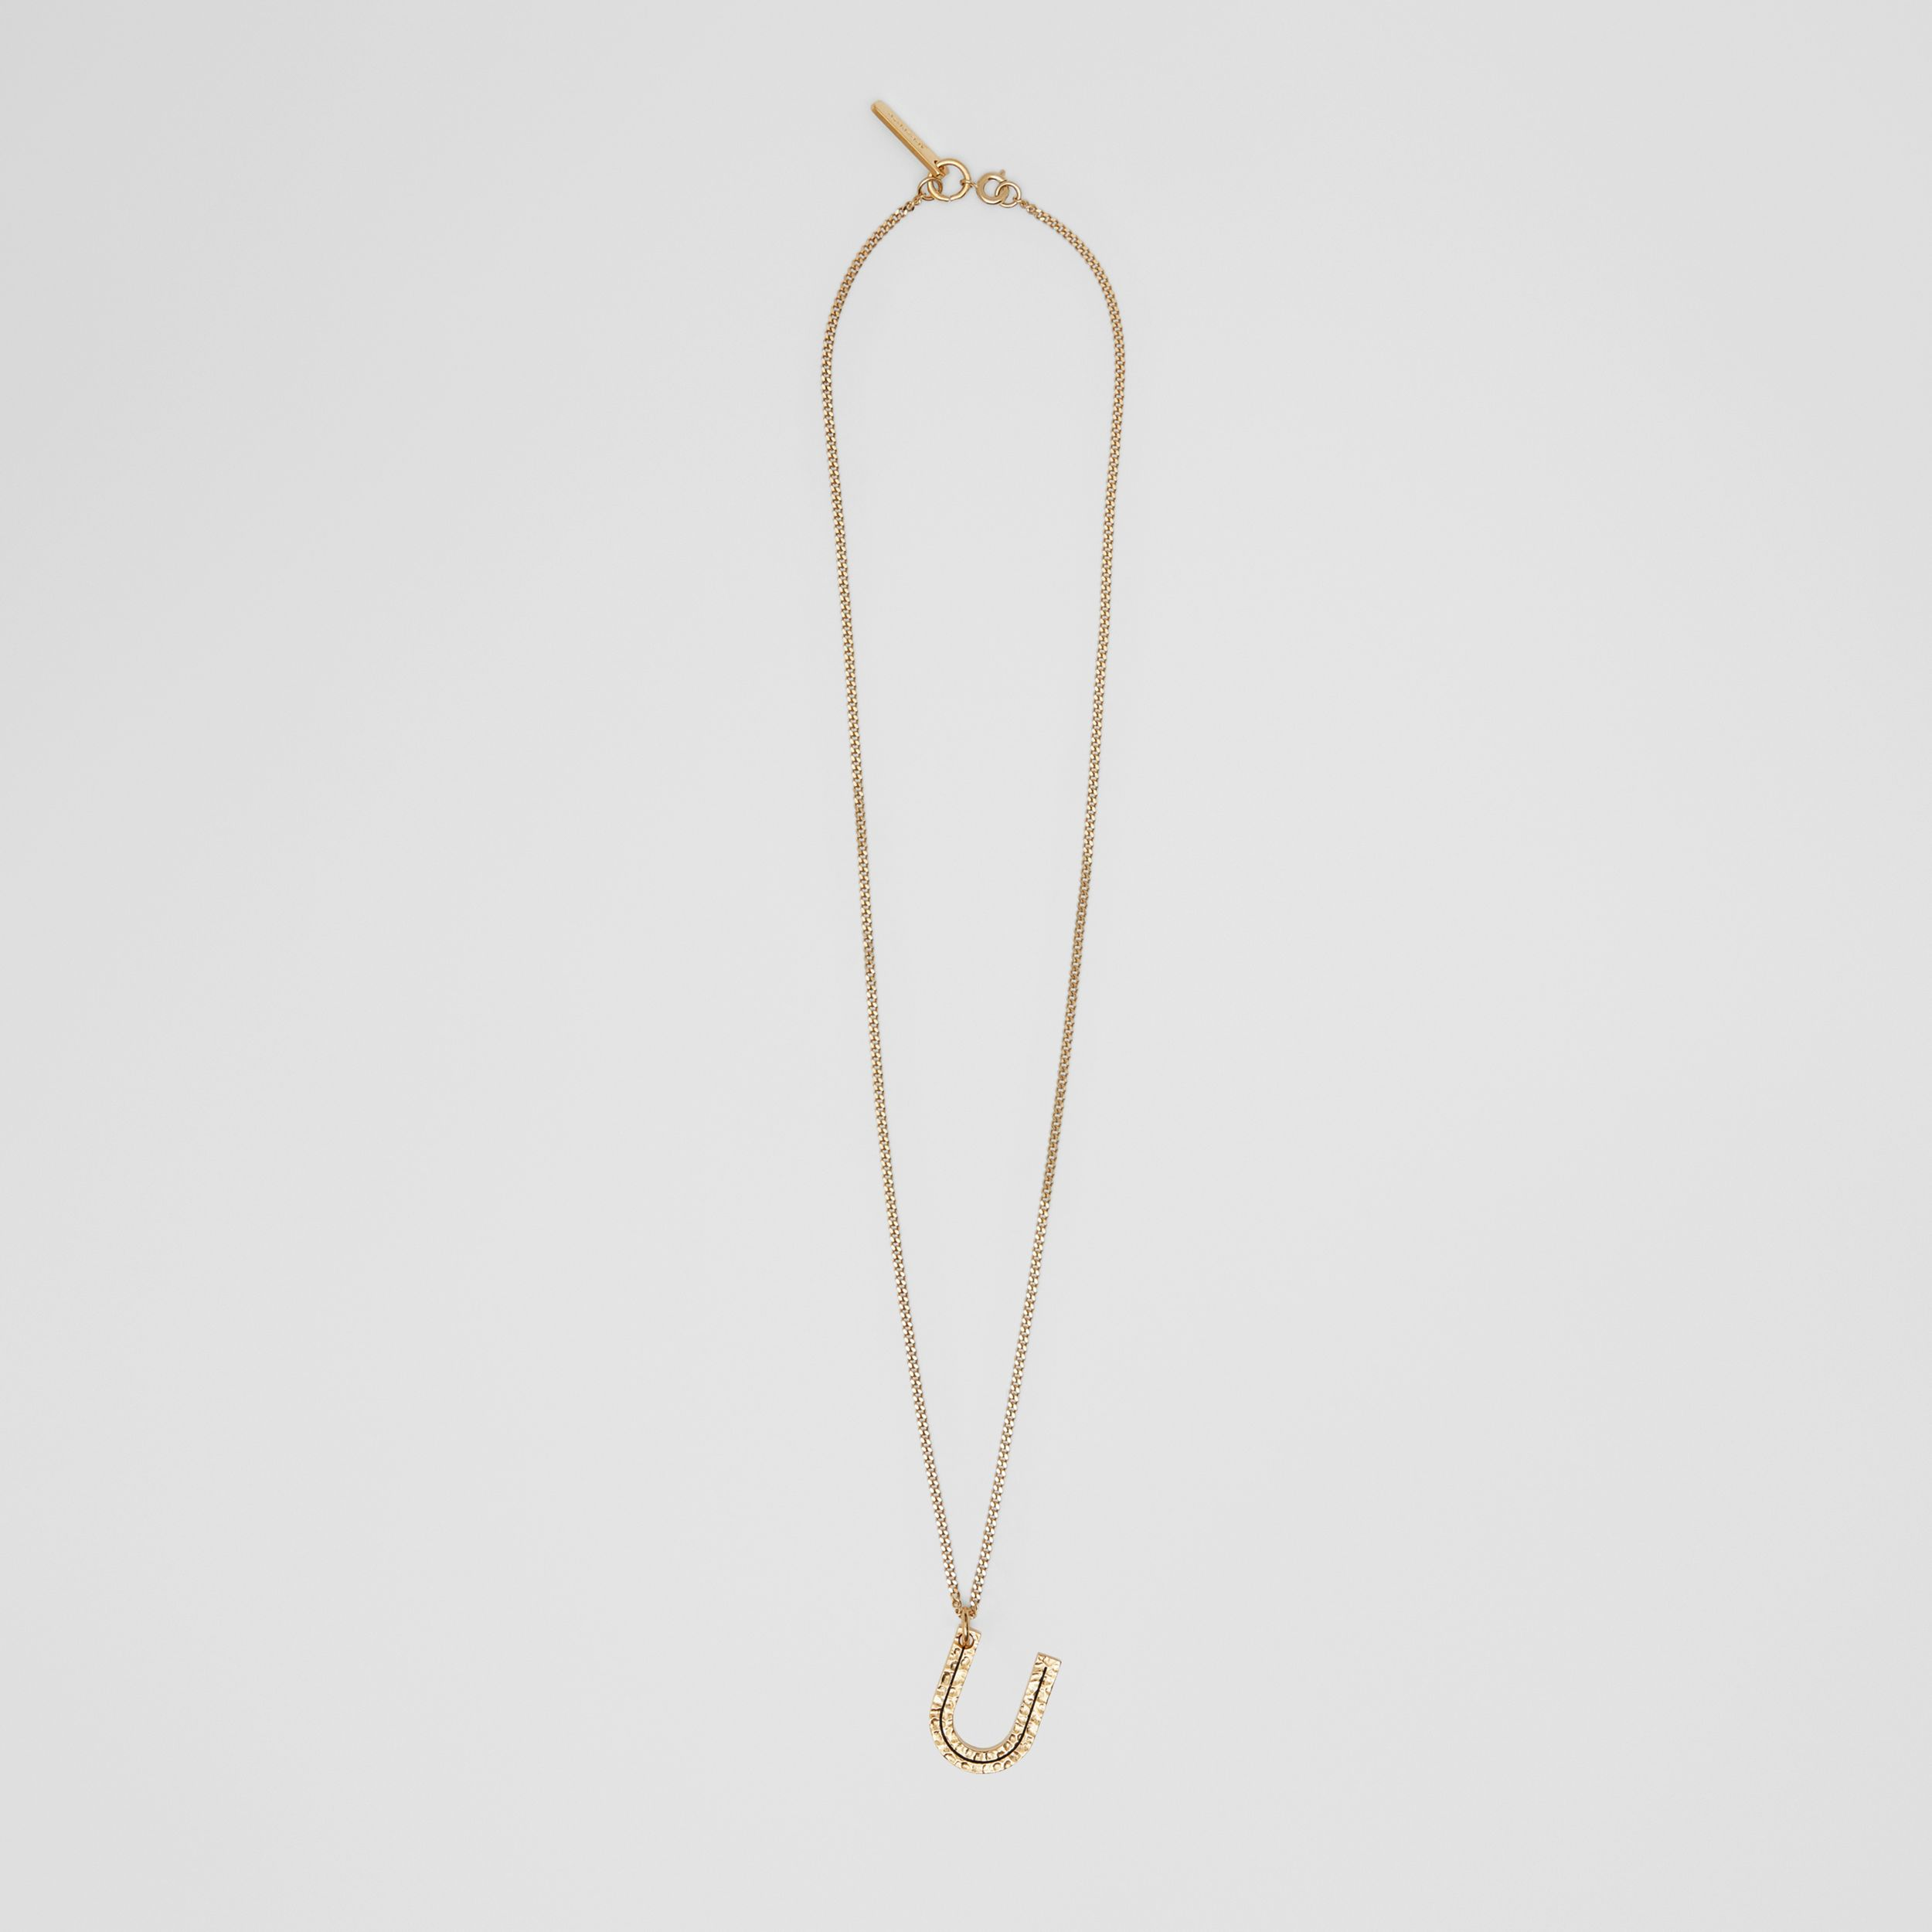 'U' Alphabet Charm Gold-plated Necklace in Light - Women | Burberry - 1